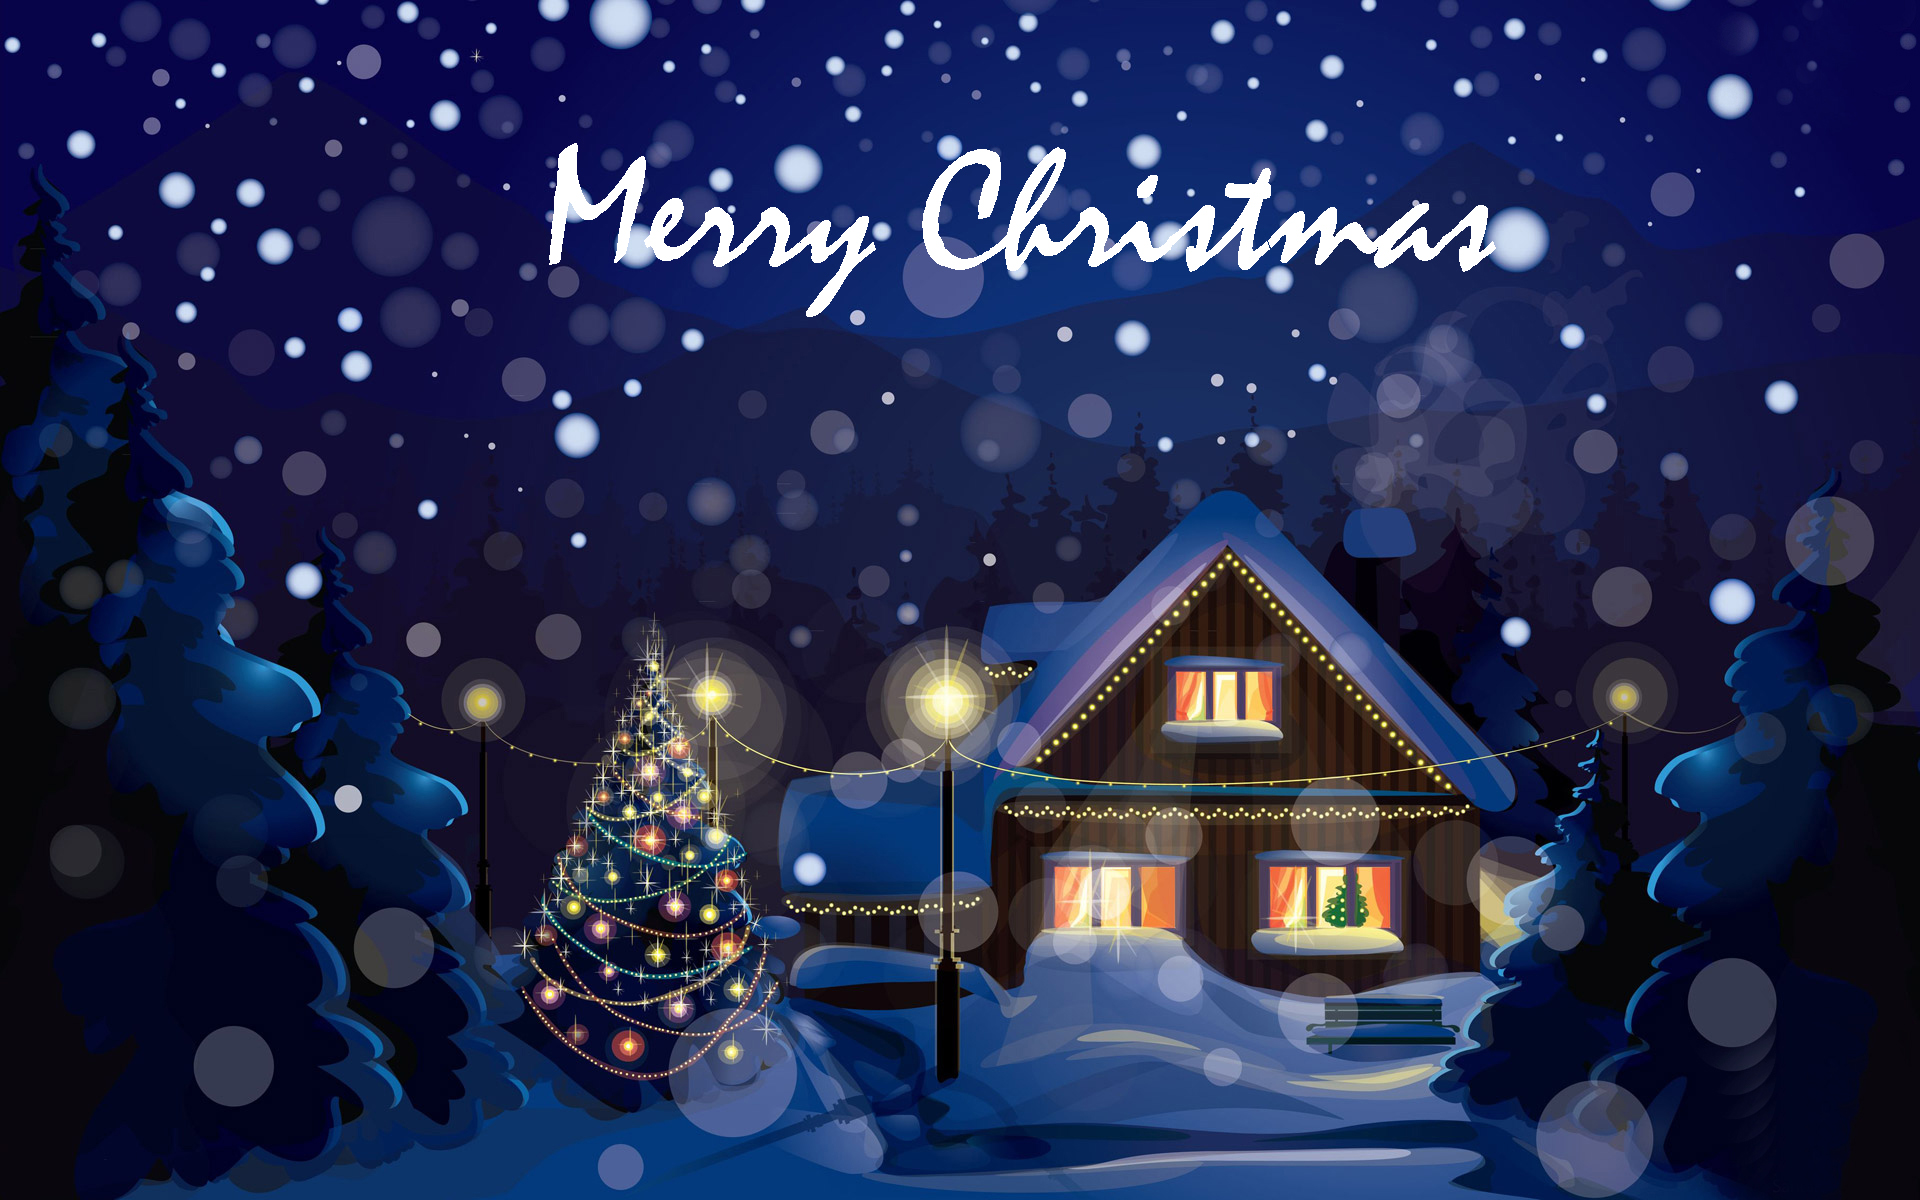 Free Download Merry Christmas Wallpapers Hd Download